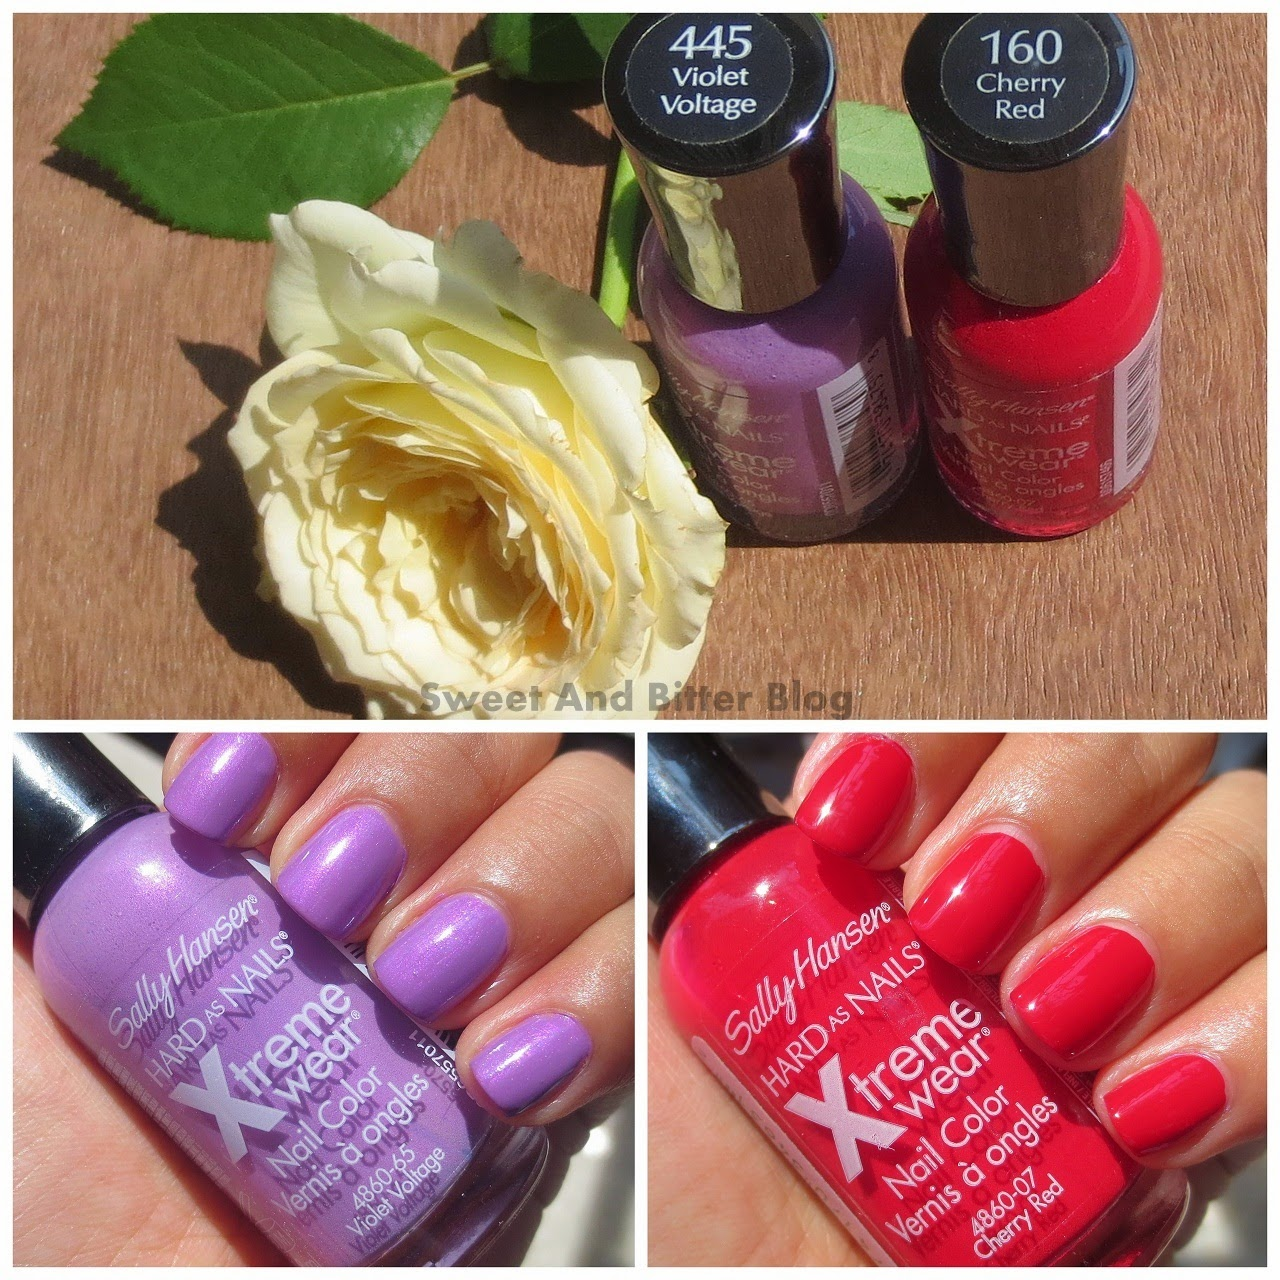 Sally Hansen Violet Voltage and Cherry Red